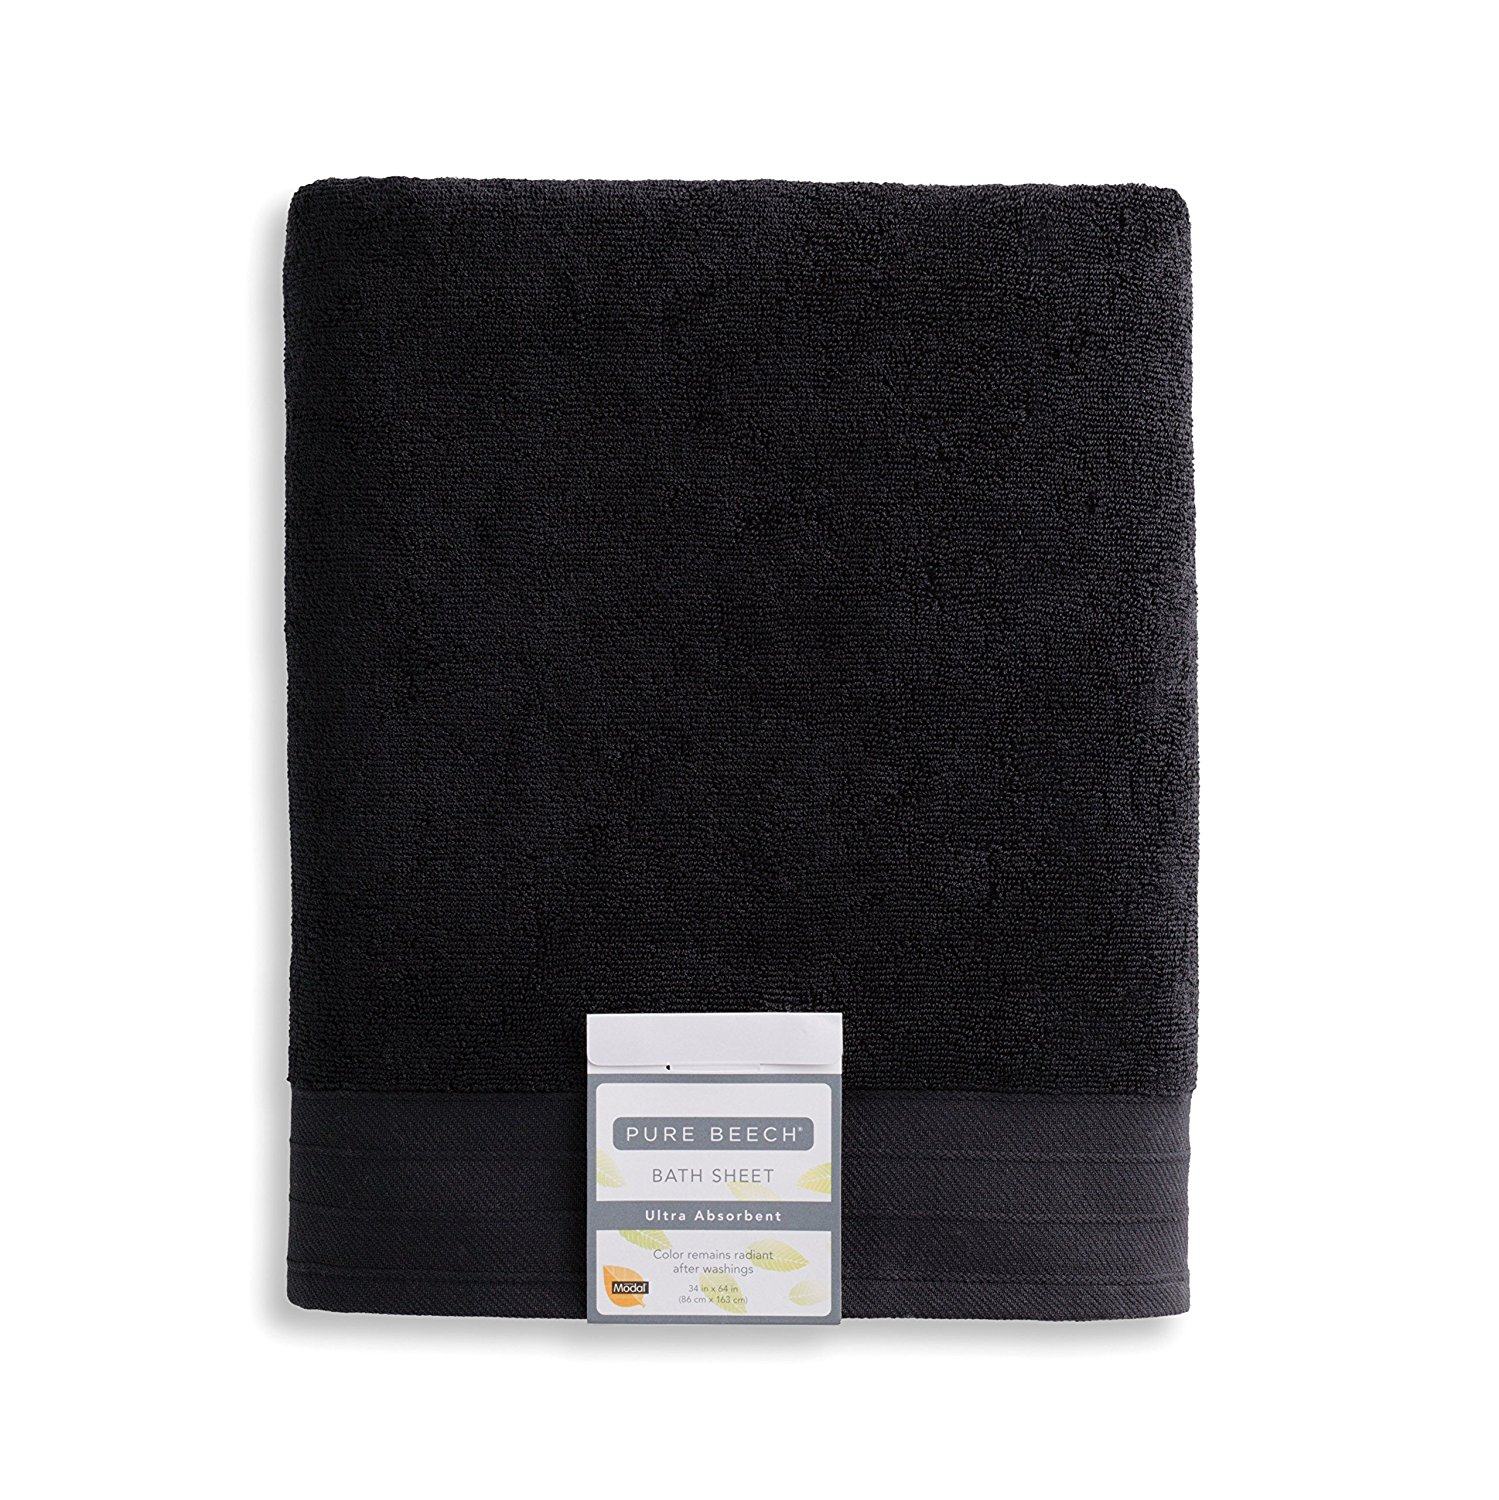 PURE PLANT HOME Pure Beech 3-Piece Bath Towel Set – Cotton Modal Blend - Hotel Quality, Bright, Super Soft and Highly Absorbent - Black